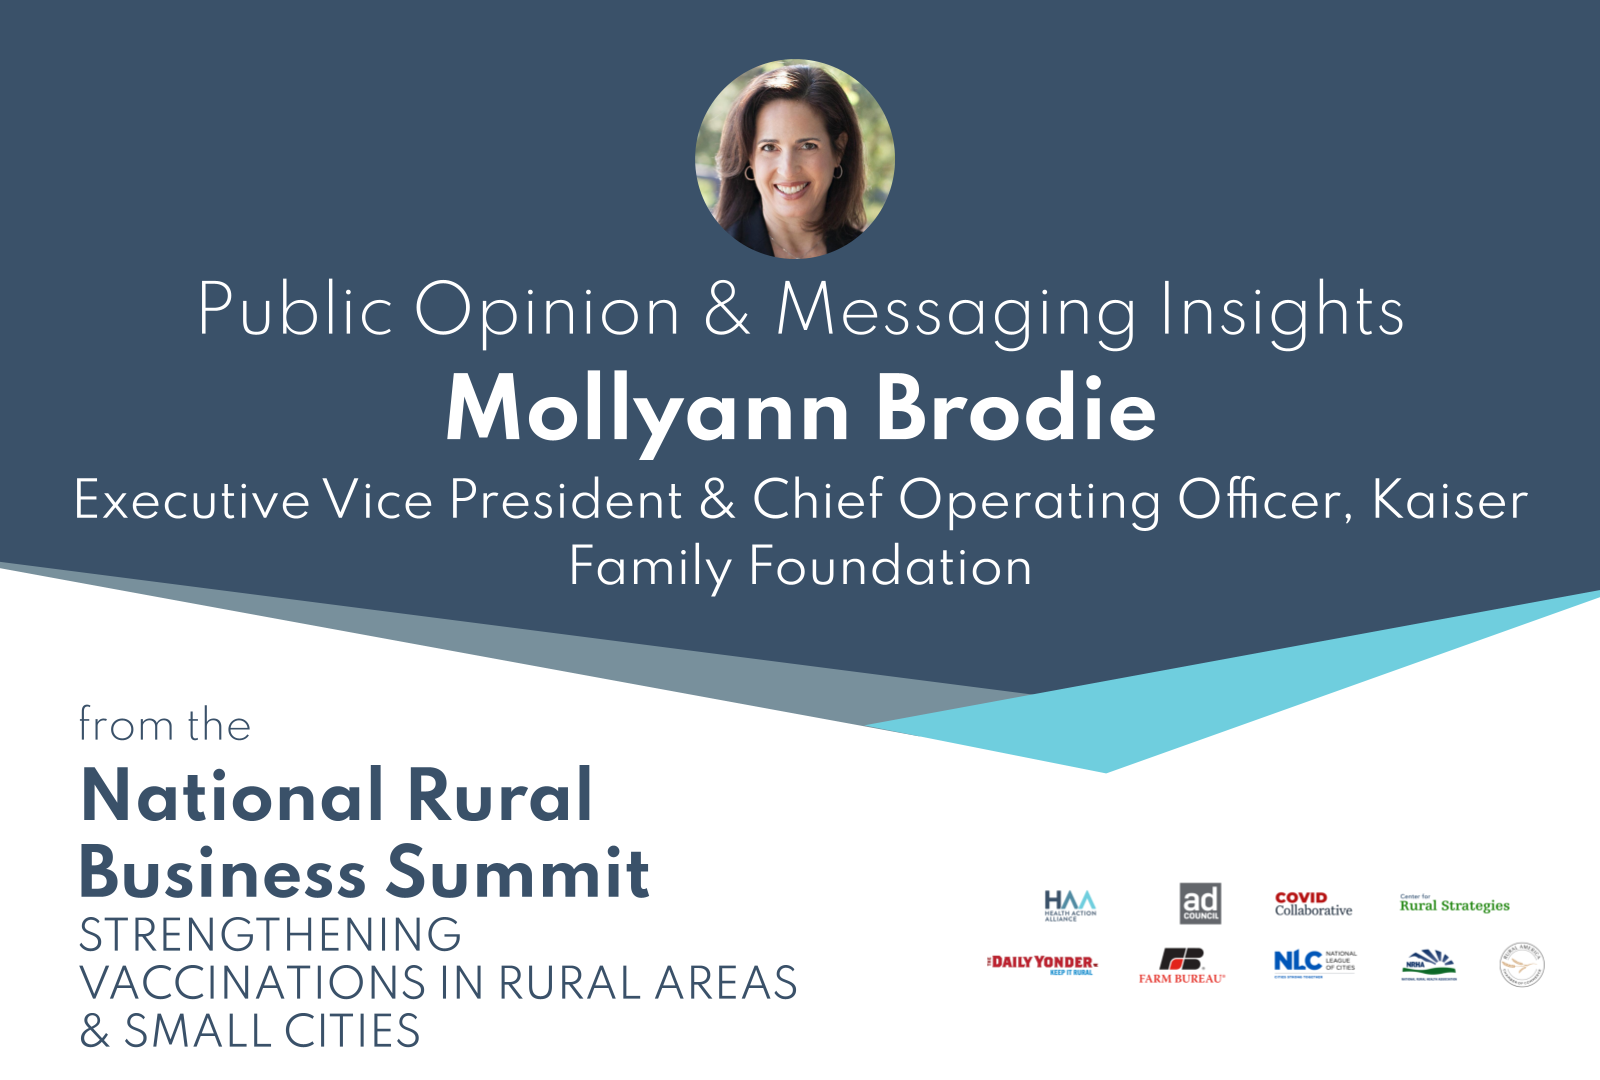 Public Opinion & Messaging Insights from Mollyann Brodie